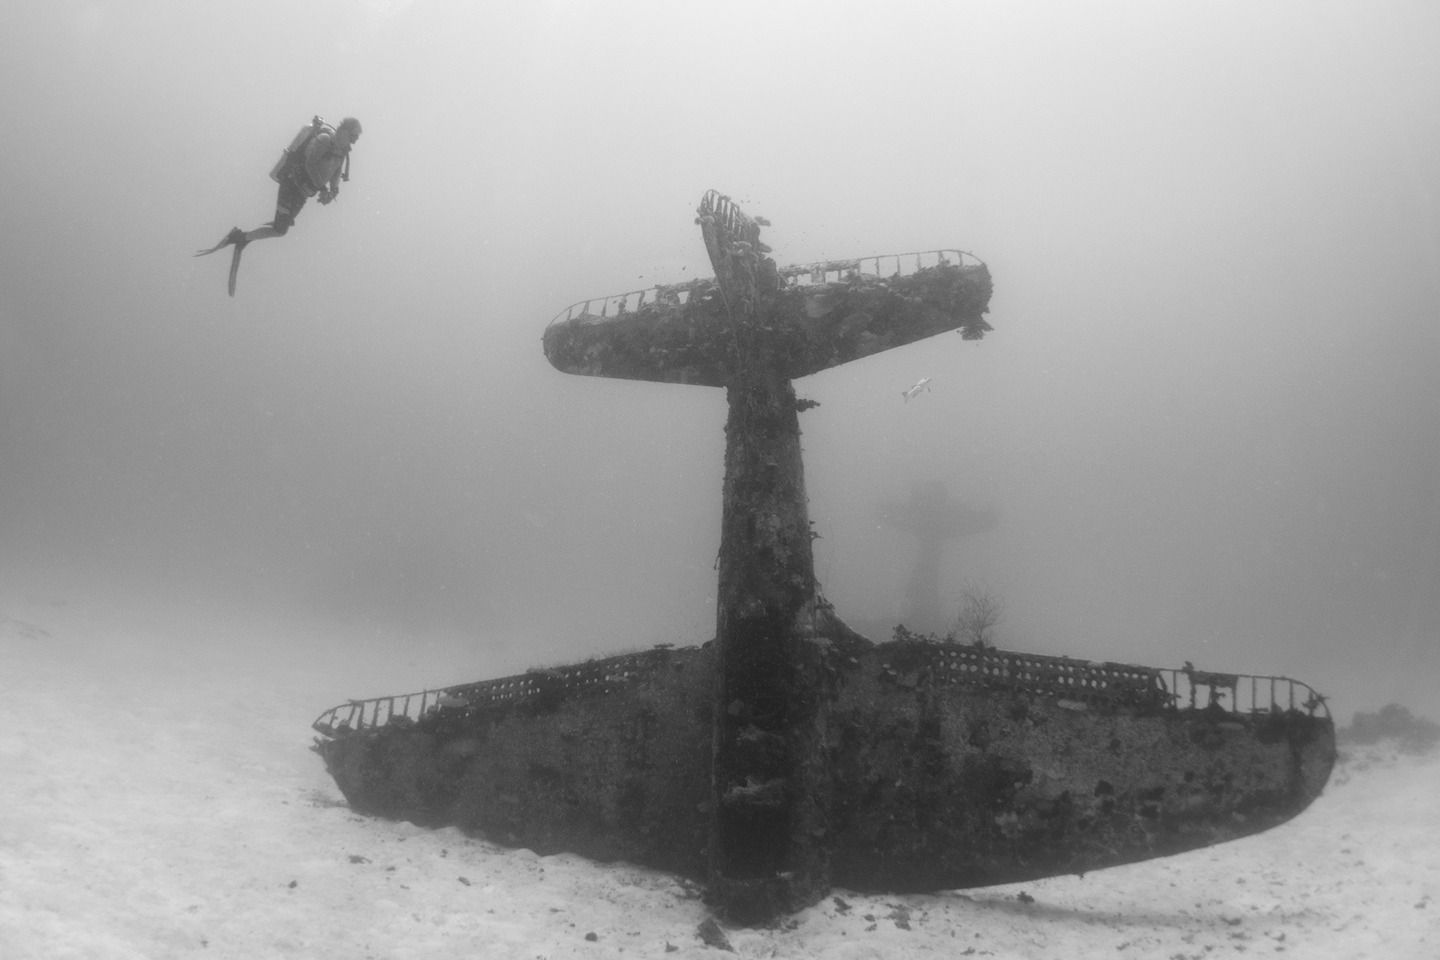 WWII planes in the ocean